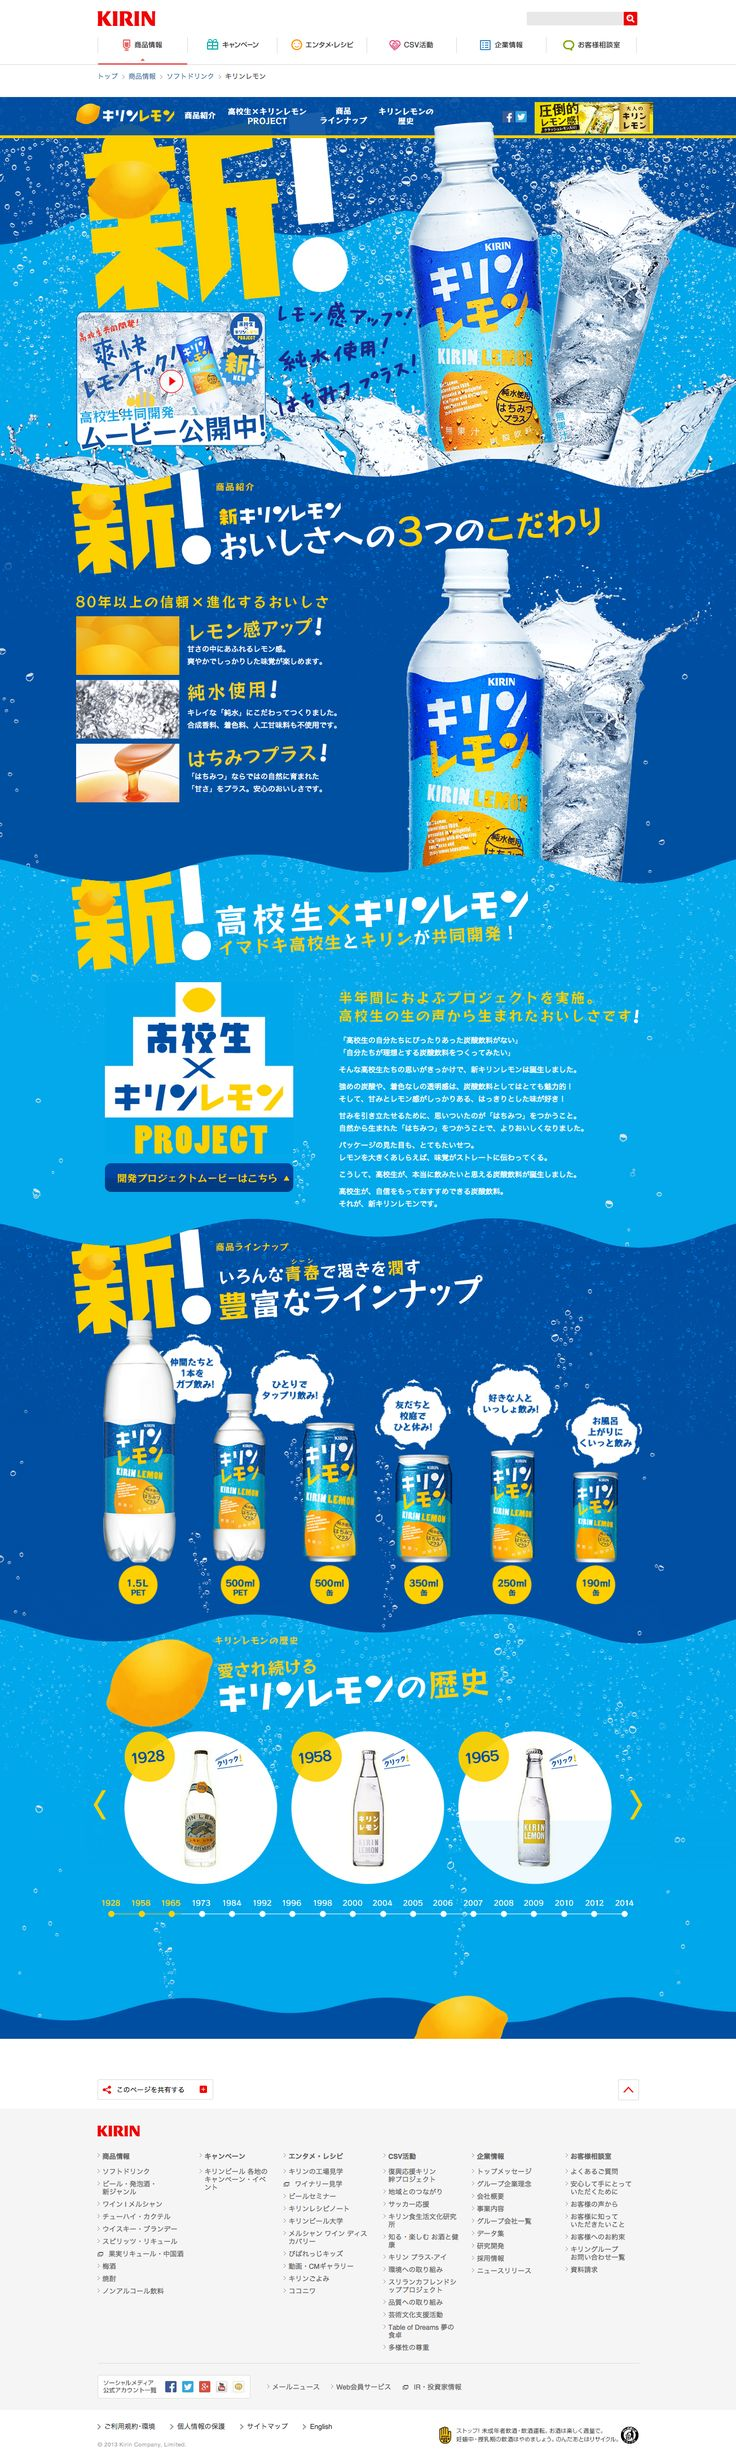 http://www.kirin.co.jp/products/softdrink/kirinlemon/